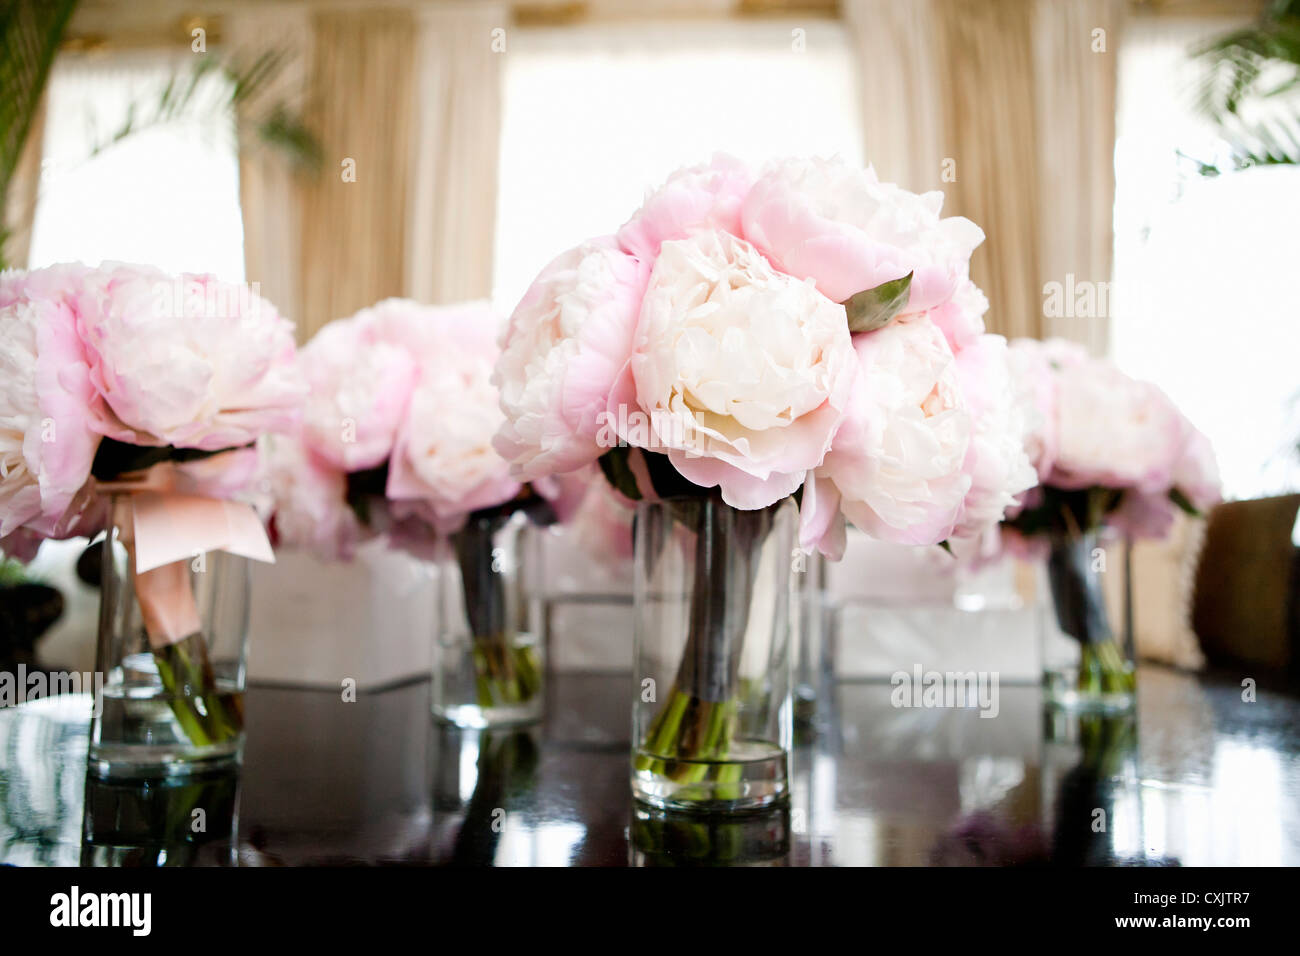 Pink Flower Centerpieces High Resolution Stock Photography And Images Alamy